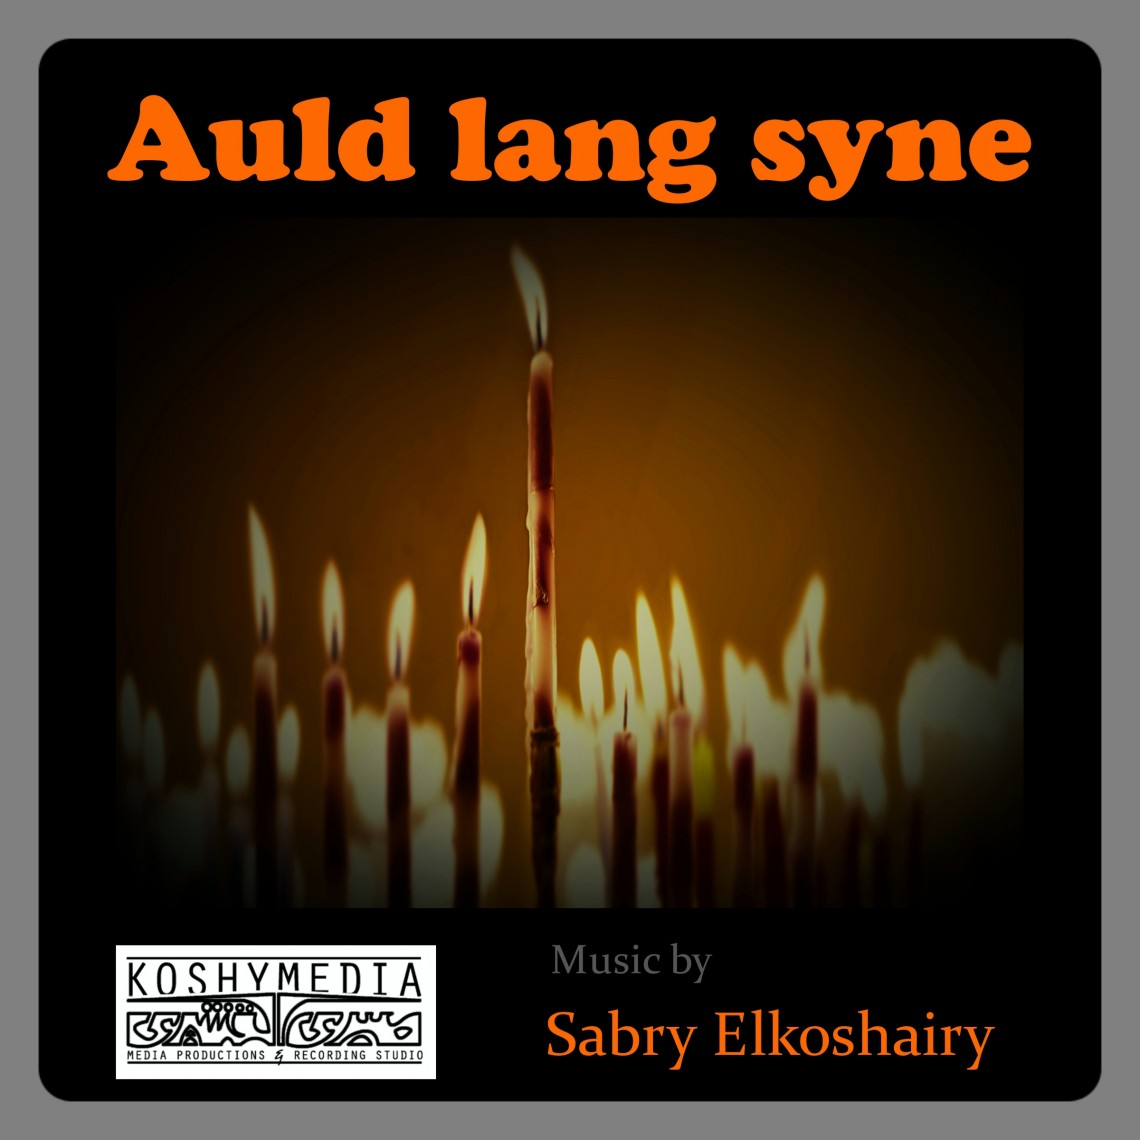 Auld Lange Syne Gets Refreshing Release with Dance Mix [VIDEO]